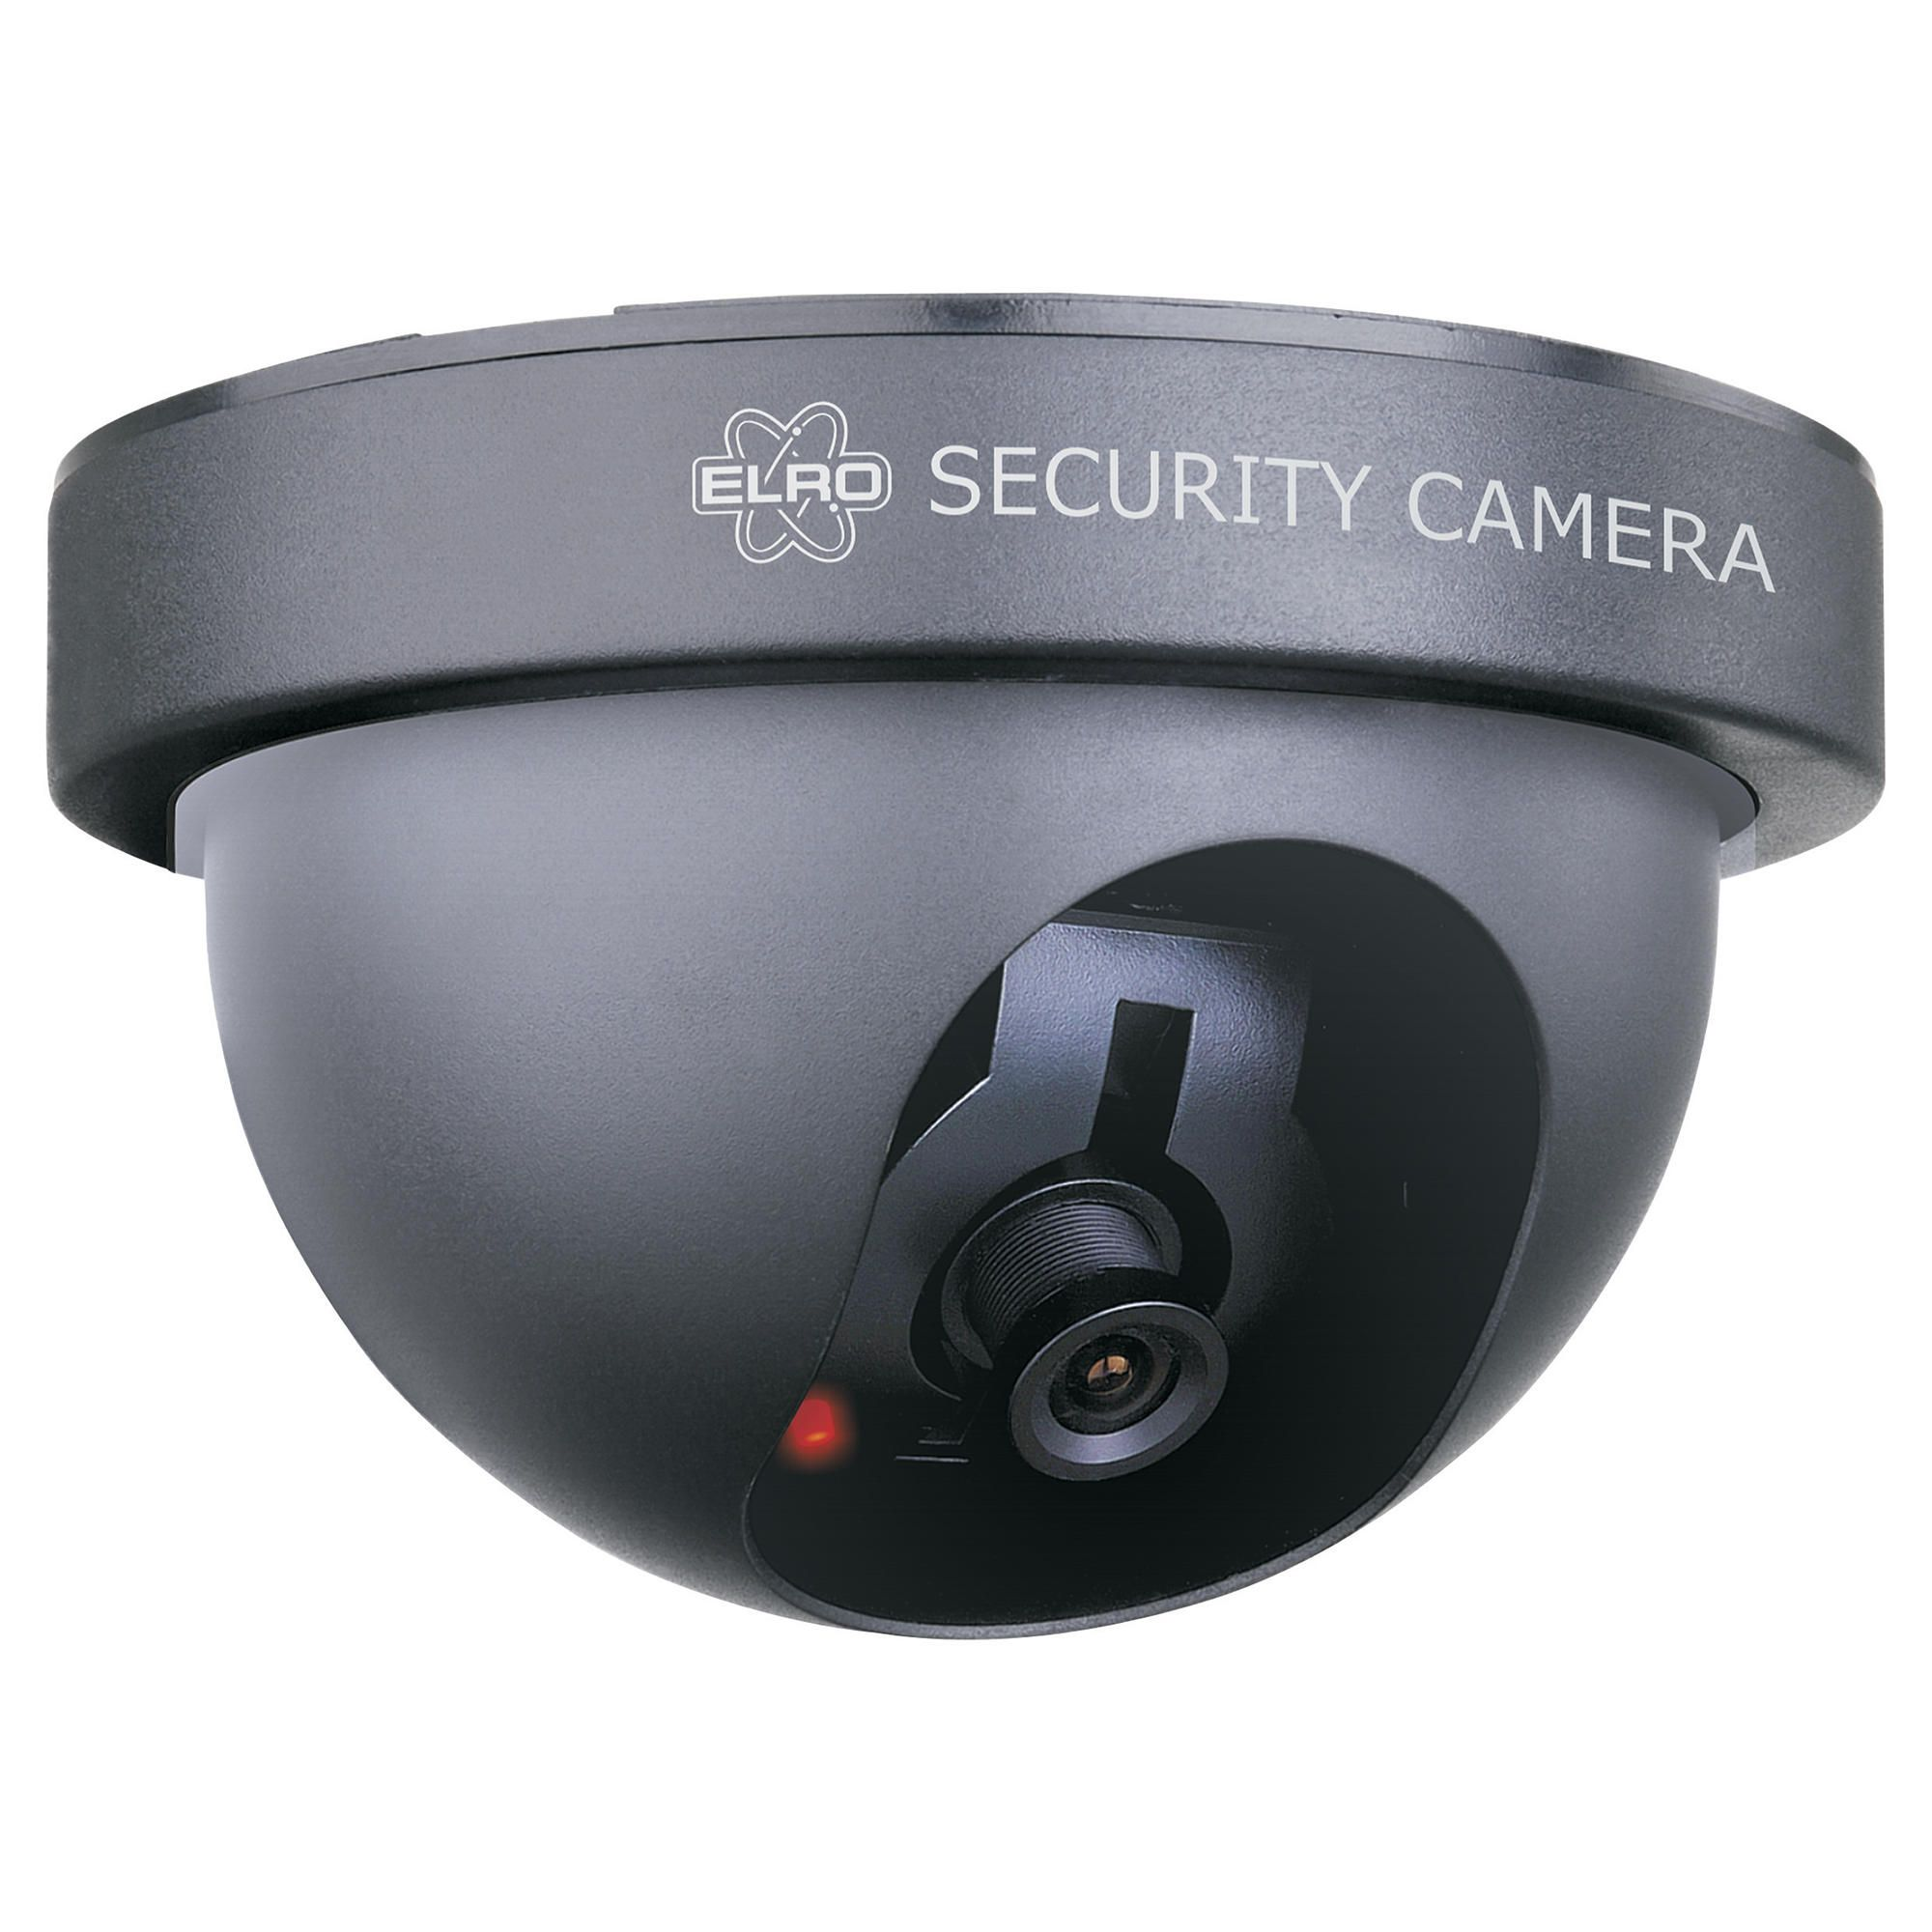 Elro Dummy Camera Cs44d